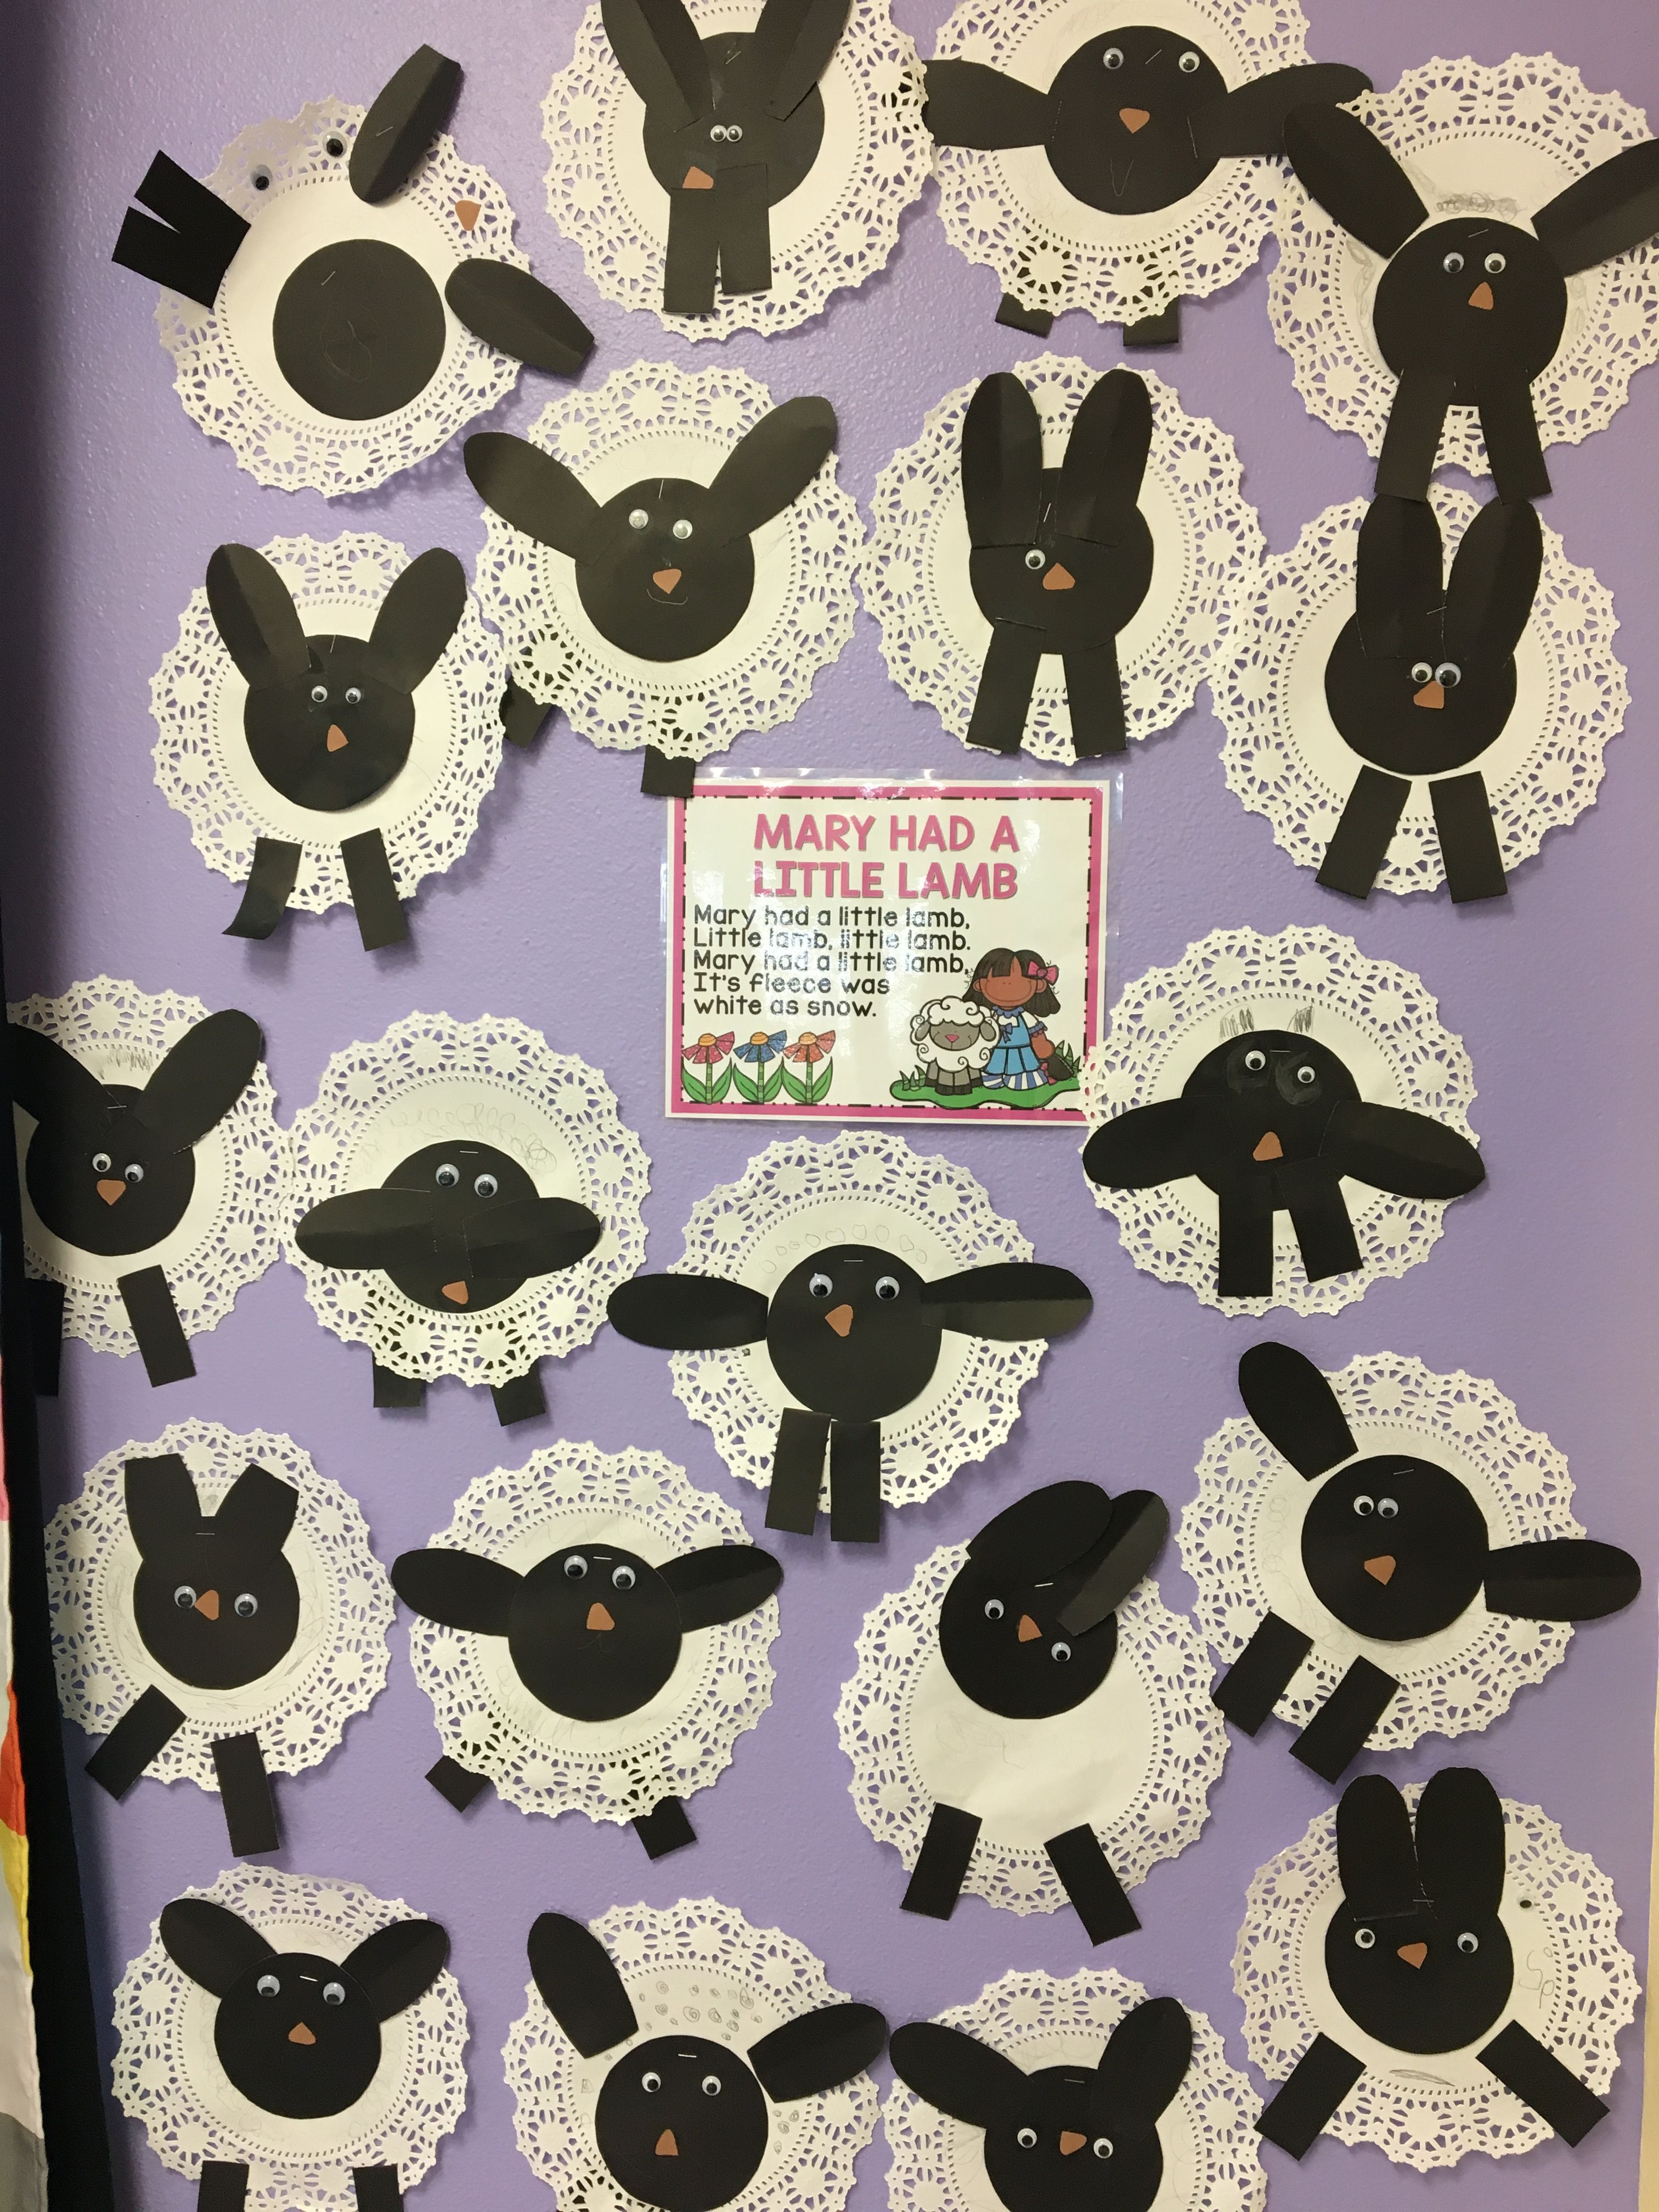 Mary Had A Little Lamb Fairy Tale Children S Craft